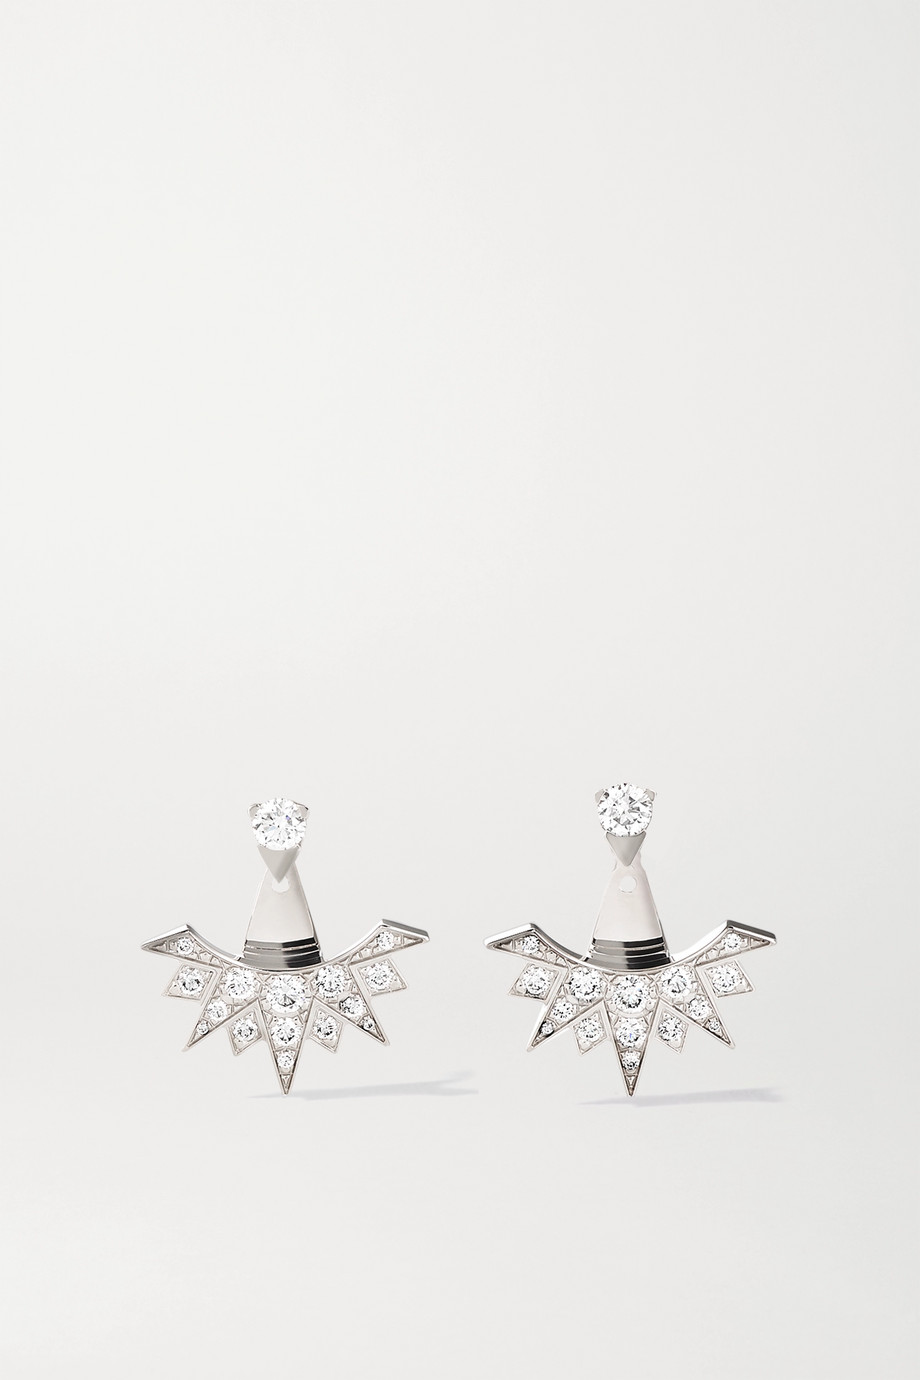 Piaget Sunlight 18-karat white gold diamond earrings